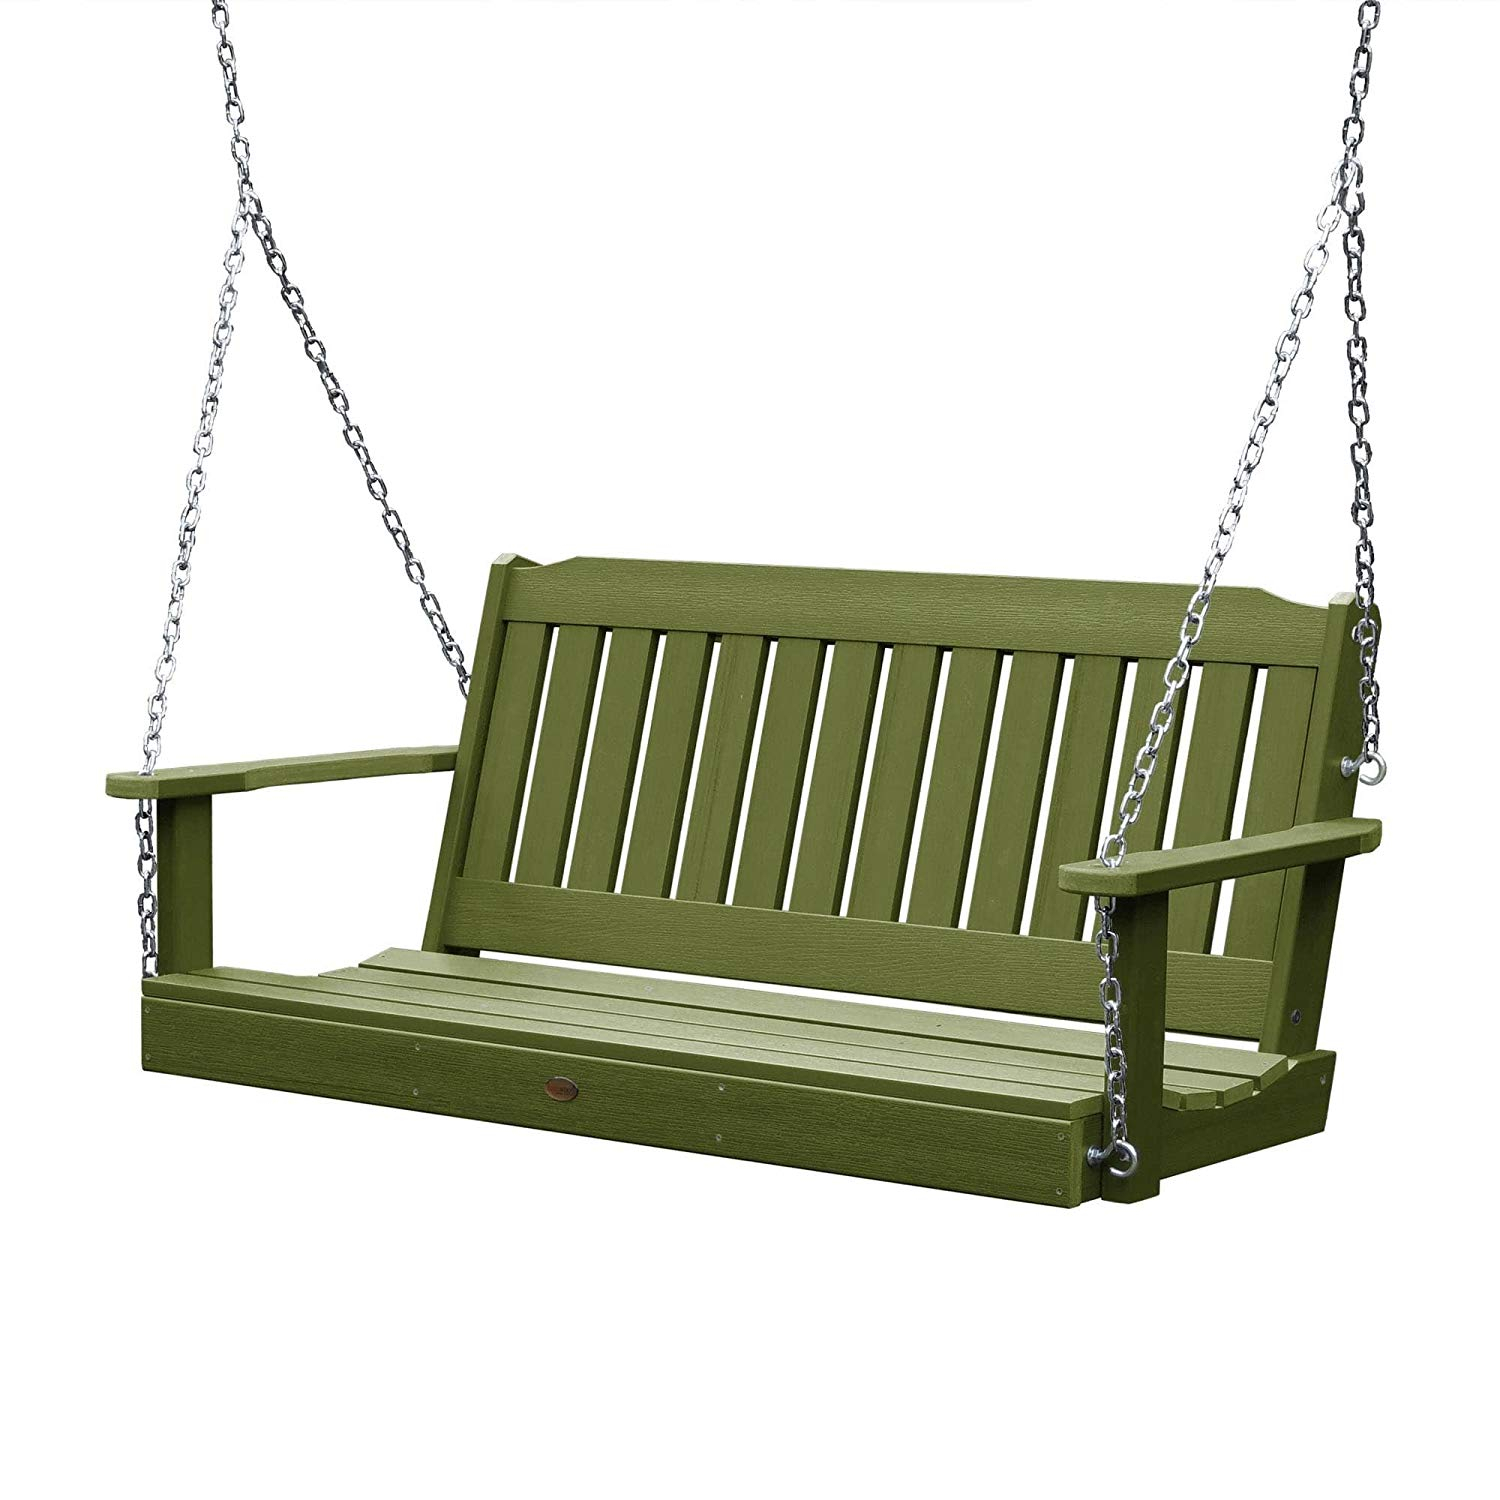 Cheap Porch Swing Chain, Find Porch Swing Chain Deals On Within Porch Swings With Chain (View 14 of 25)